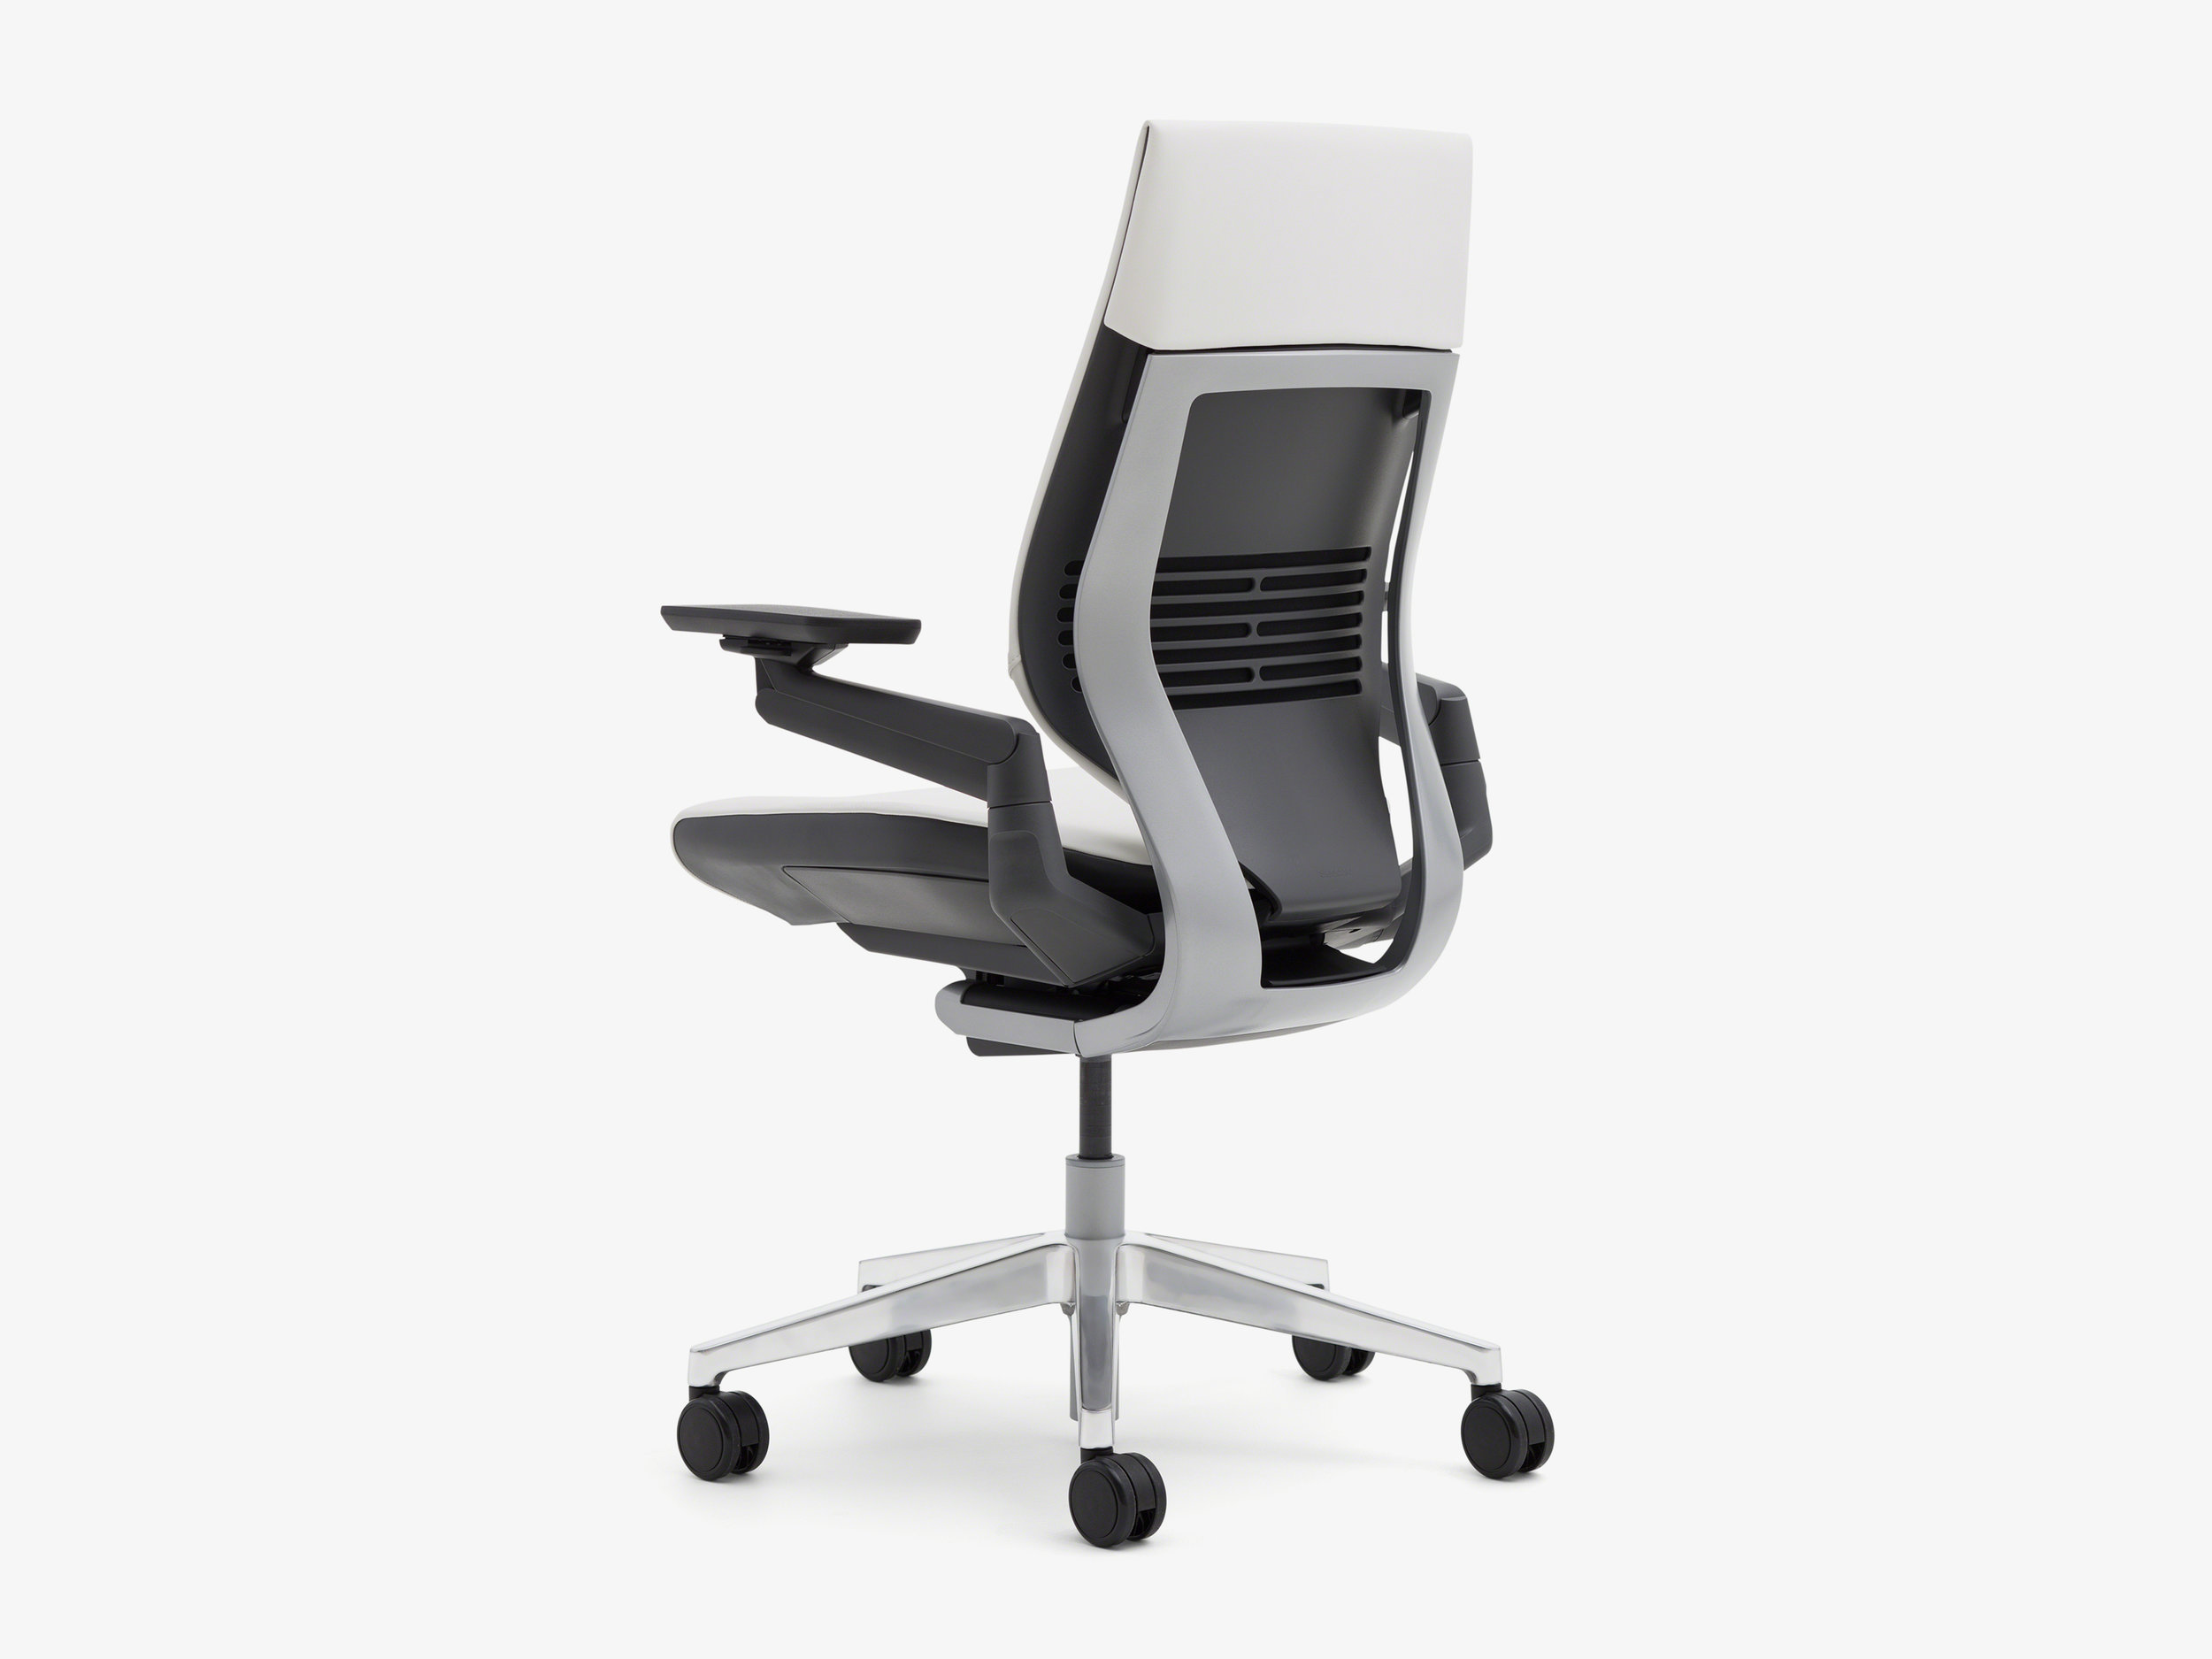 gesture-chair-wrapped-back-13-0006300.jpg